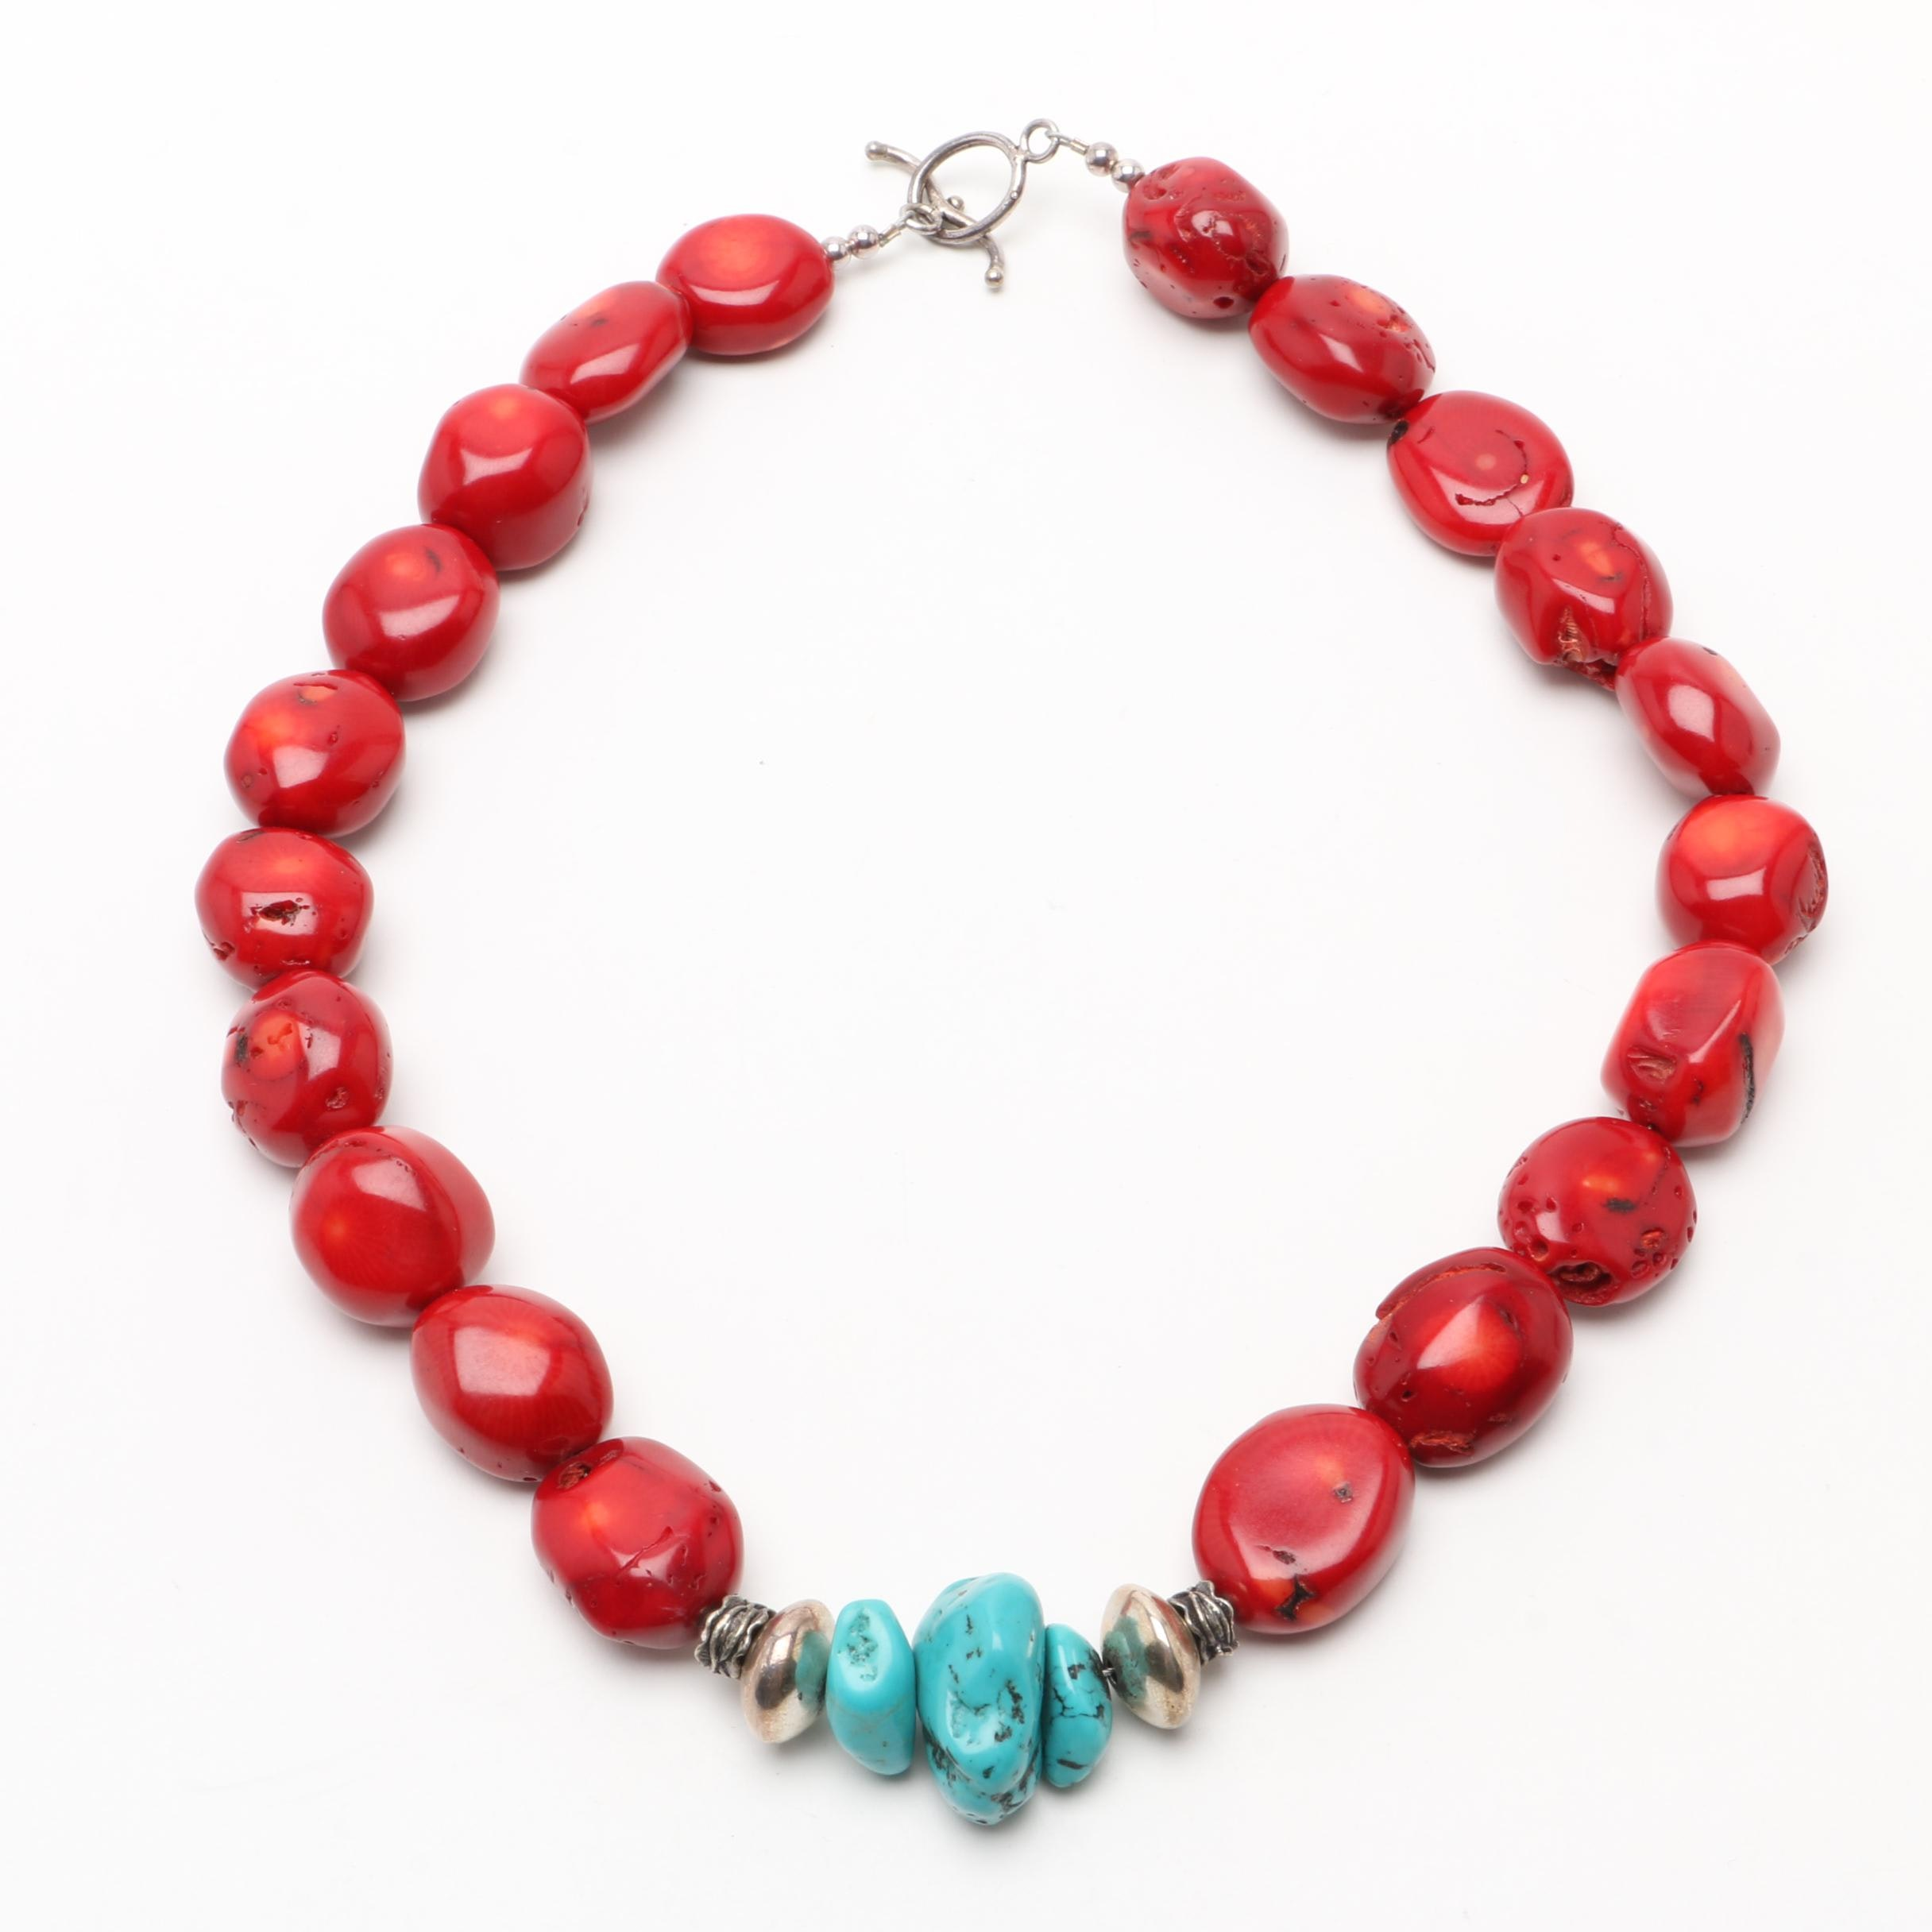 Southwestern 900 Silver Stabilized Turquoise and Dyed Coral Beaded Necklace